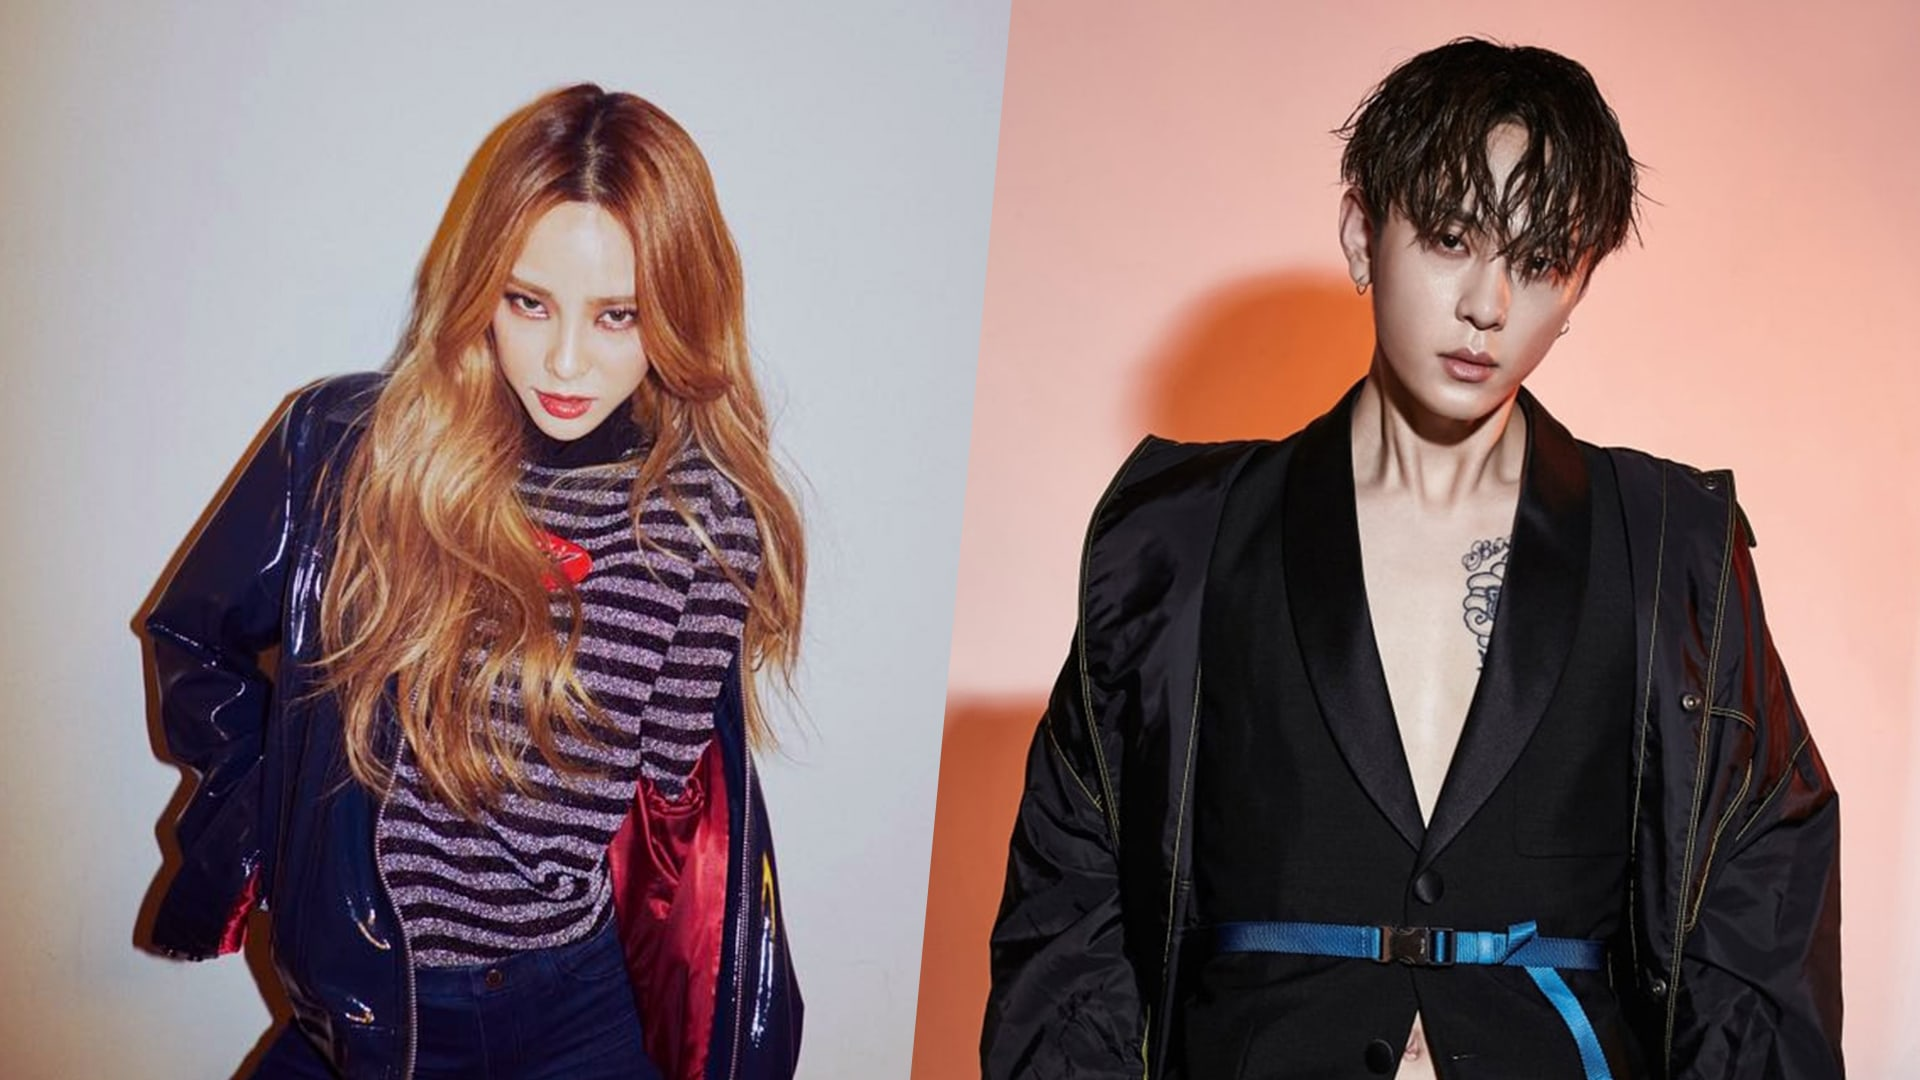 Highlight's Yong Junhyung And Heize Talk About How They First Met And Their Favorite Breakup Songs